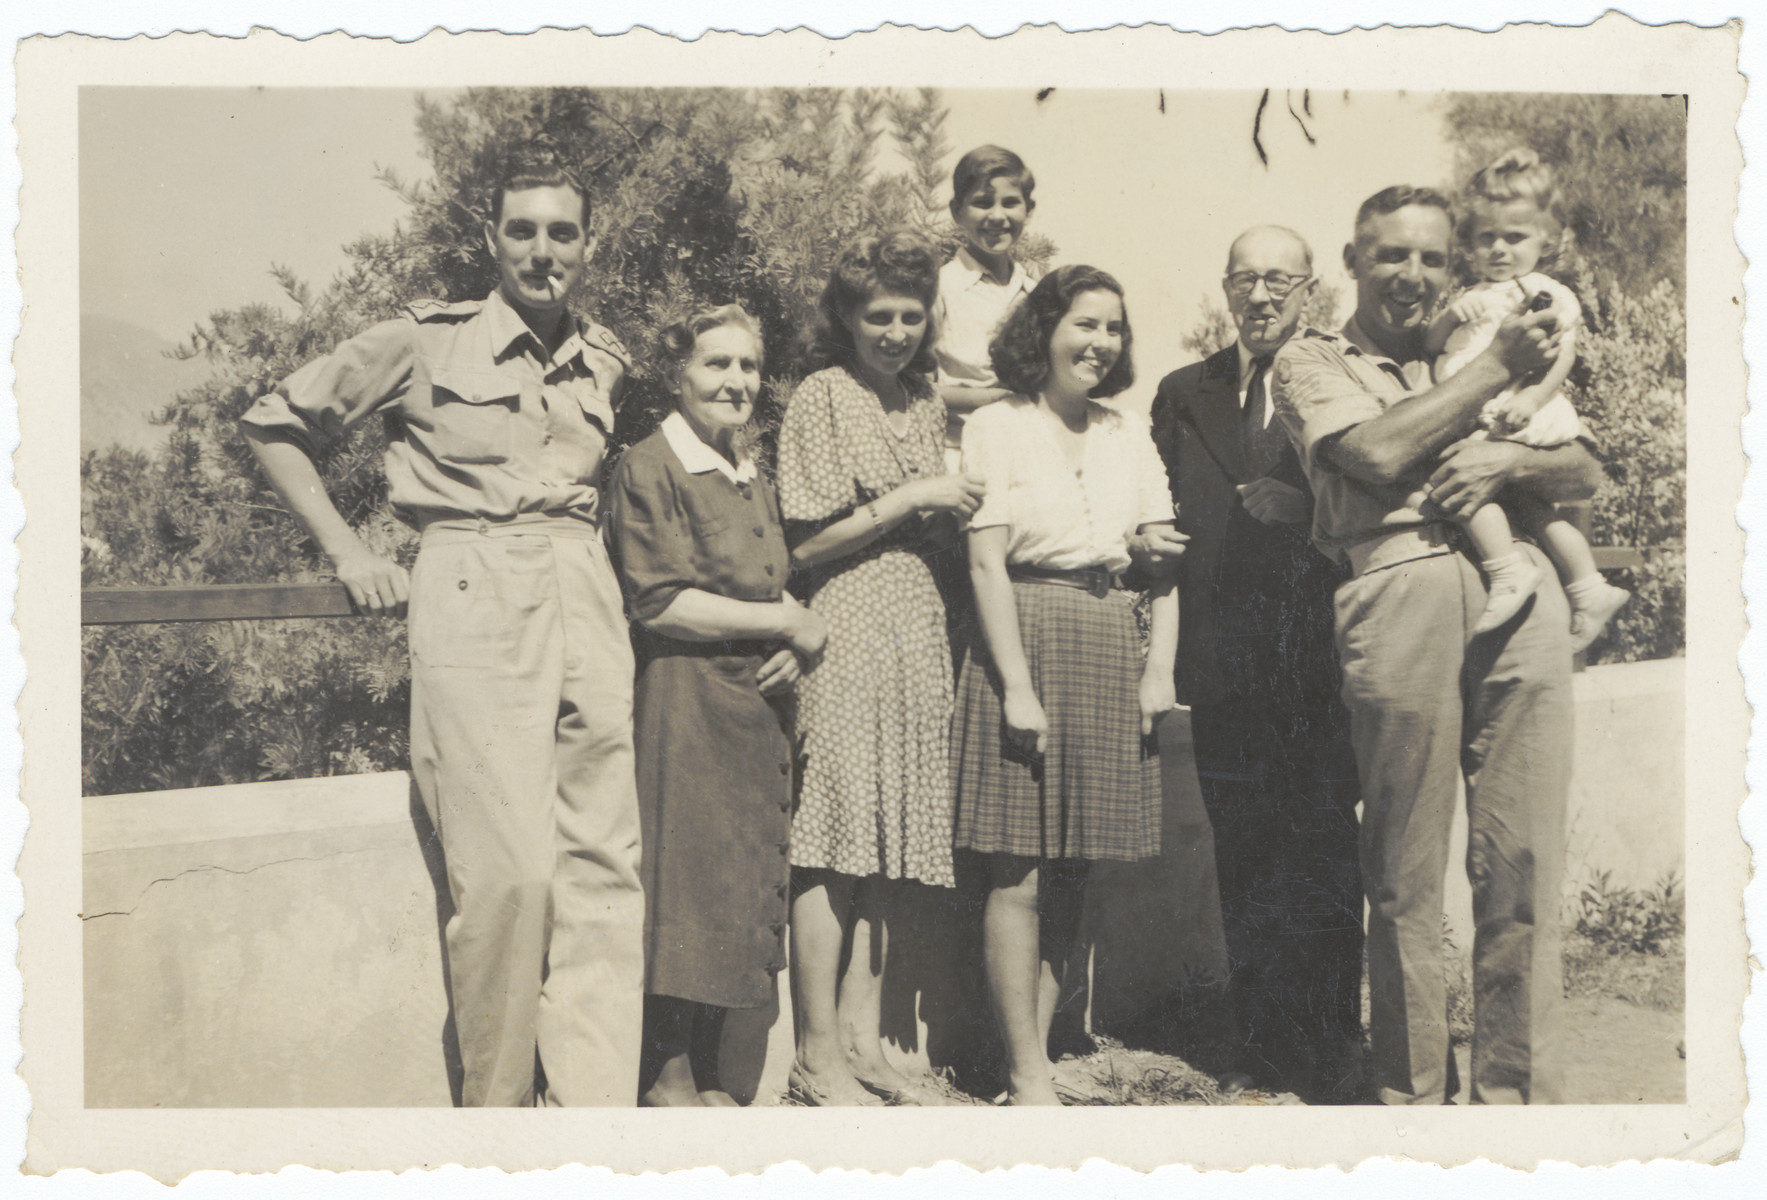 A Jewish family poses with American soldiers and the mayor of the town after liberation.  From left to right are an American soldier, Yetta, Luba, Josy and Renee Fainas, the mayor of the town who was also in the resistance and another American soldier.